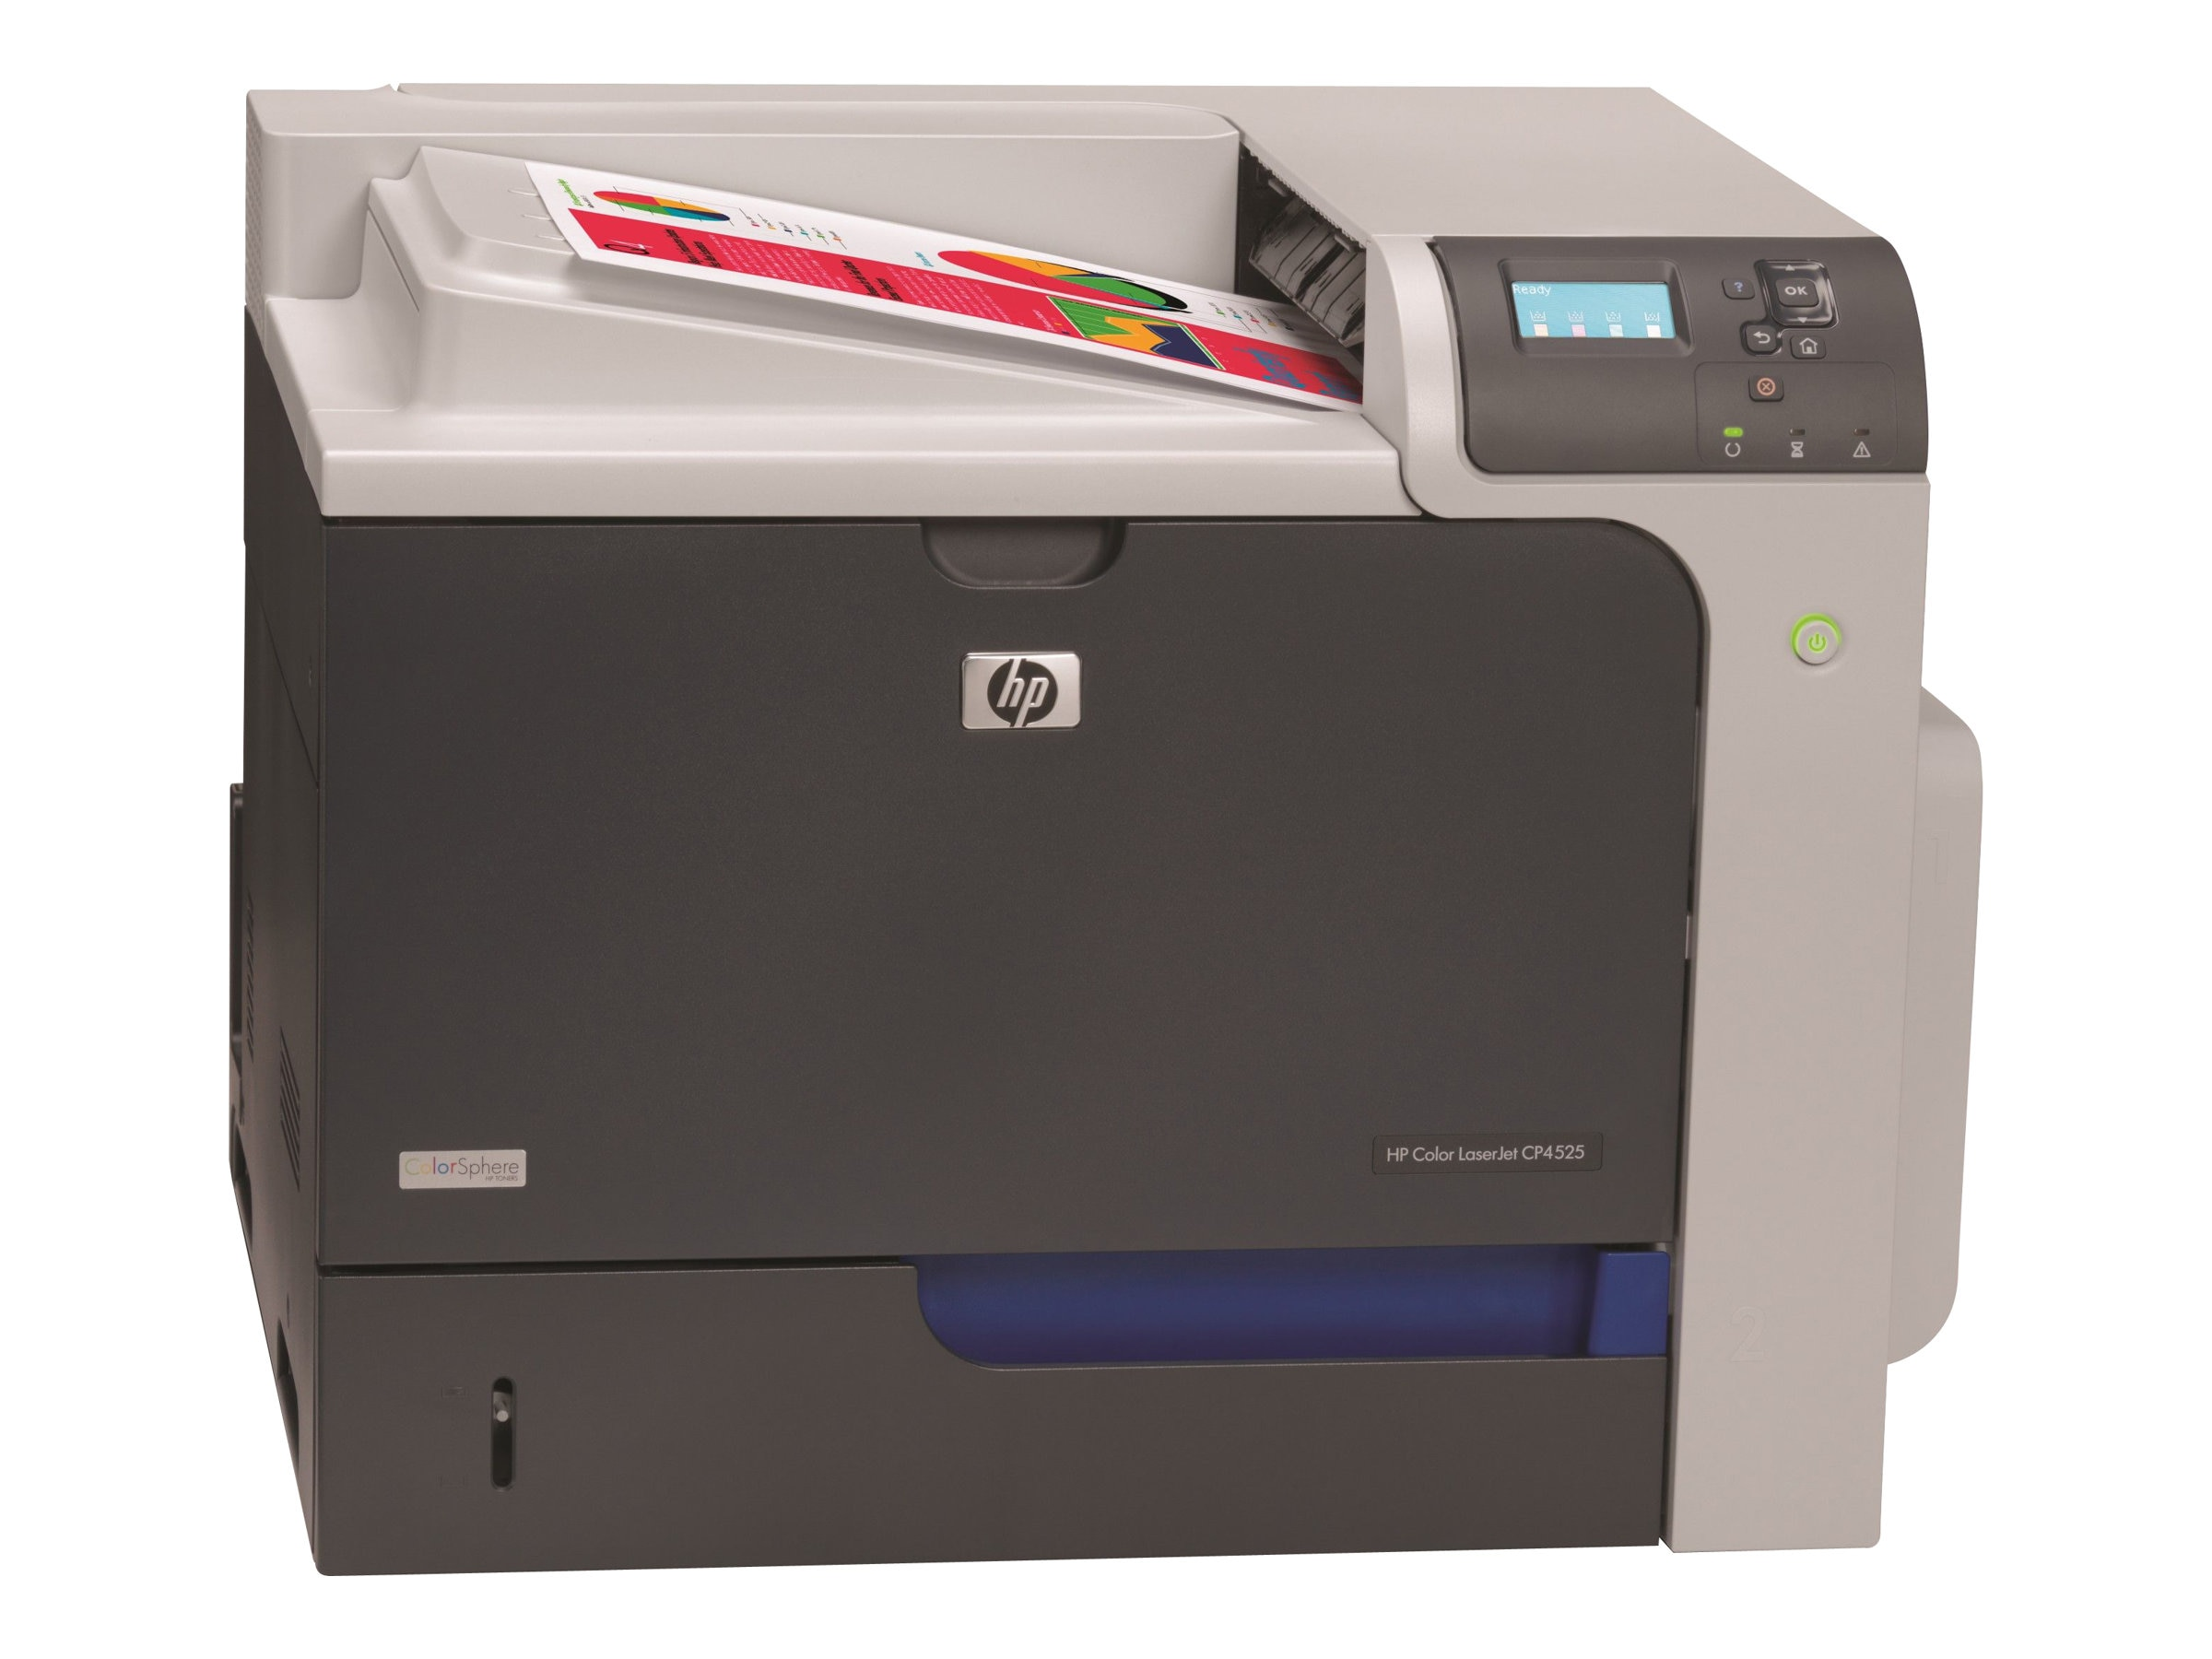 HP Color LaserJet Enterprise CP4025dn Printer (VPA), CC490A#BGJ